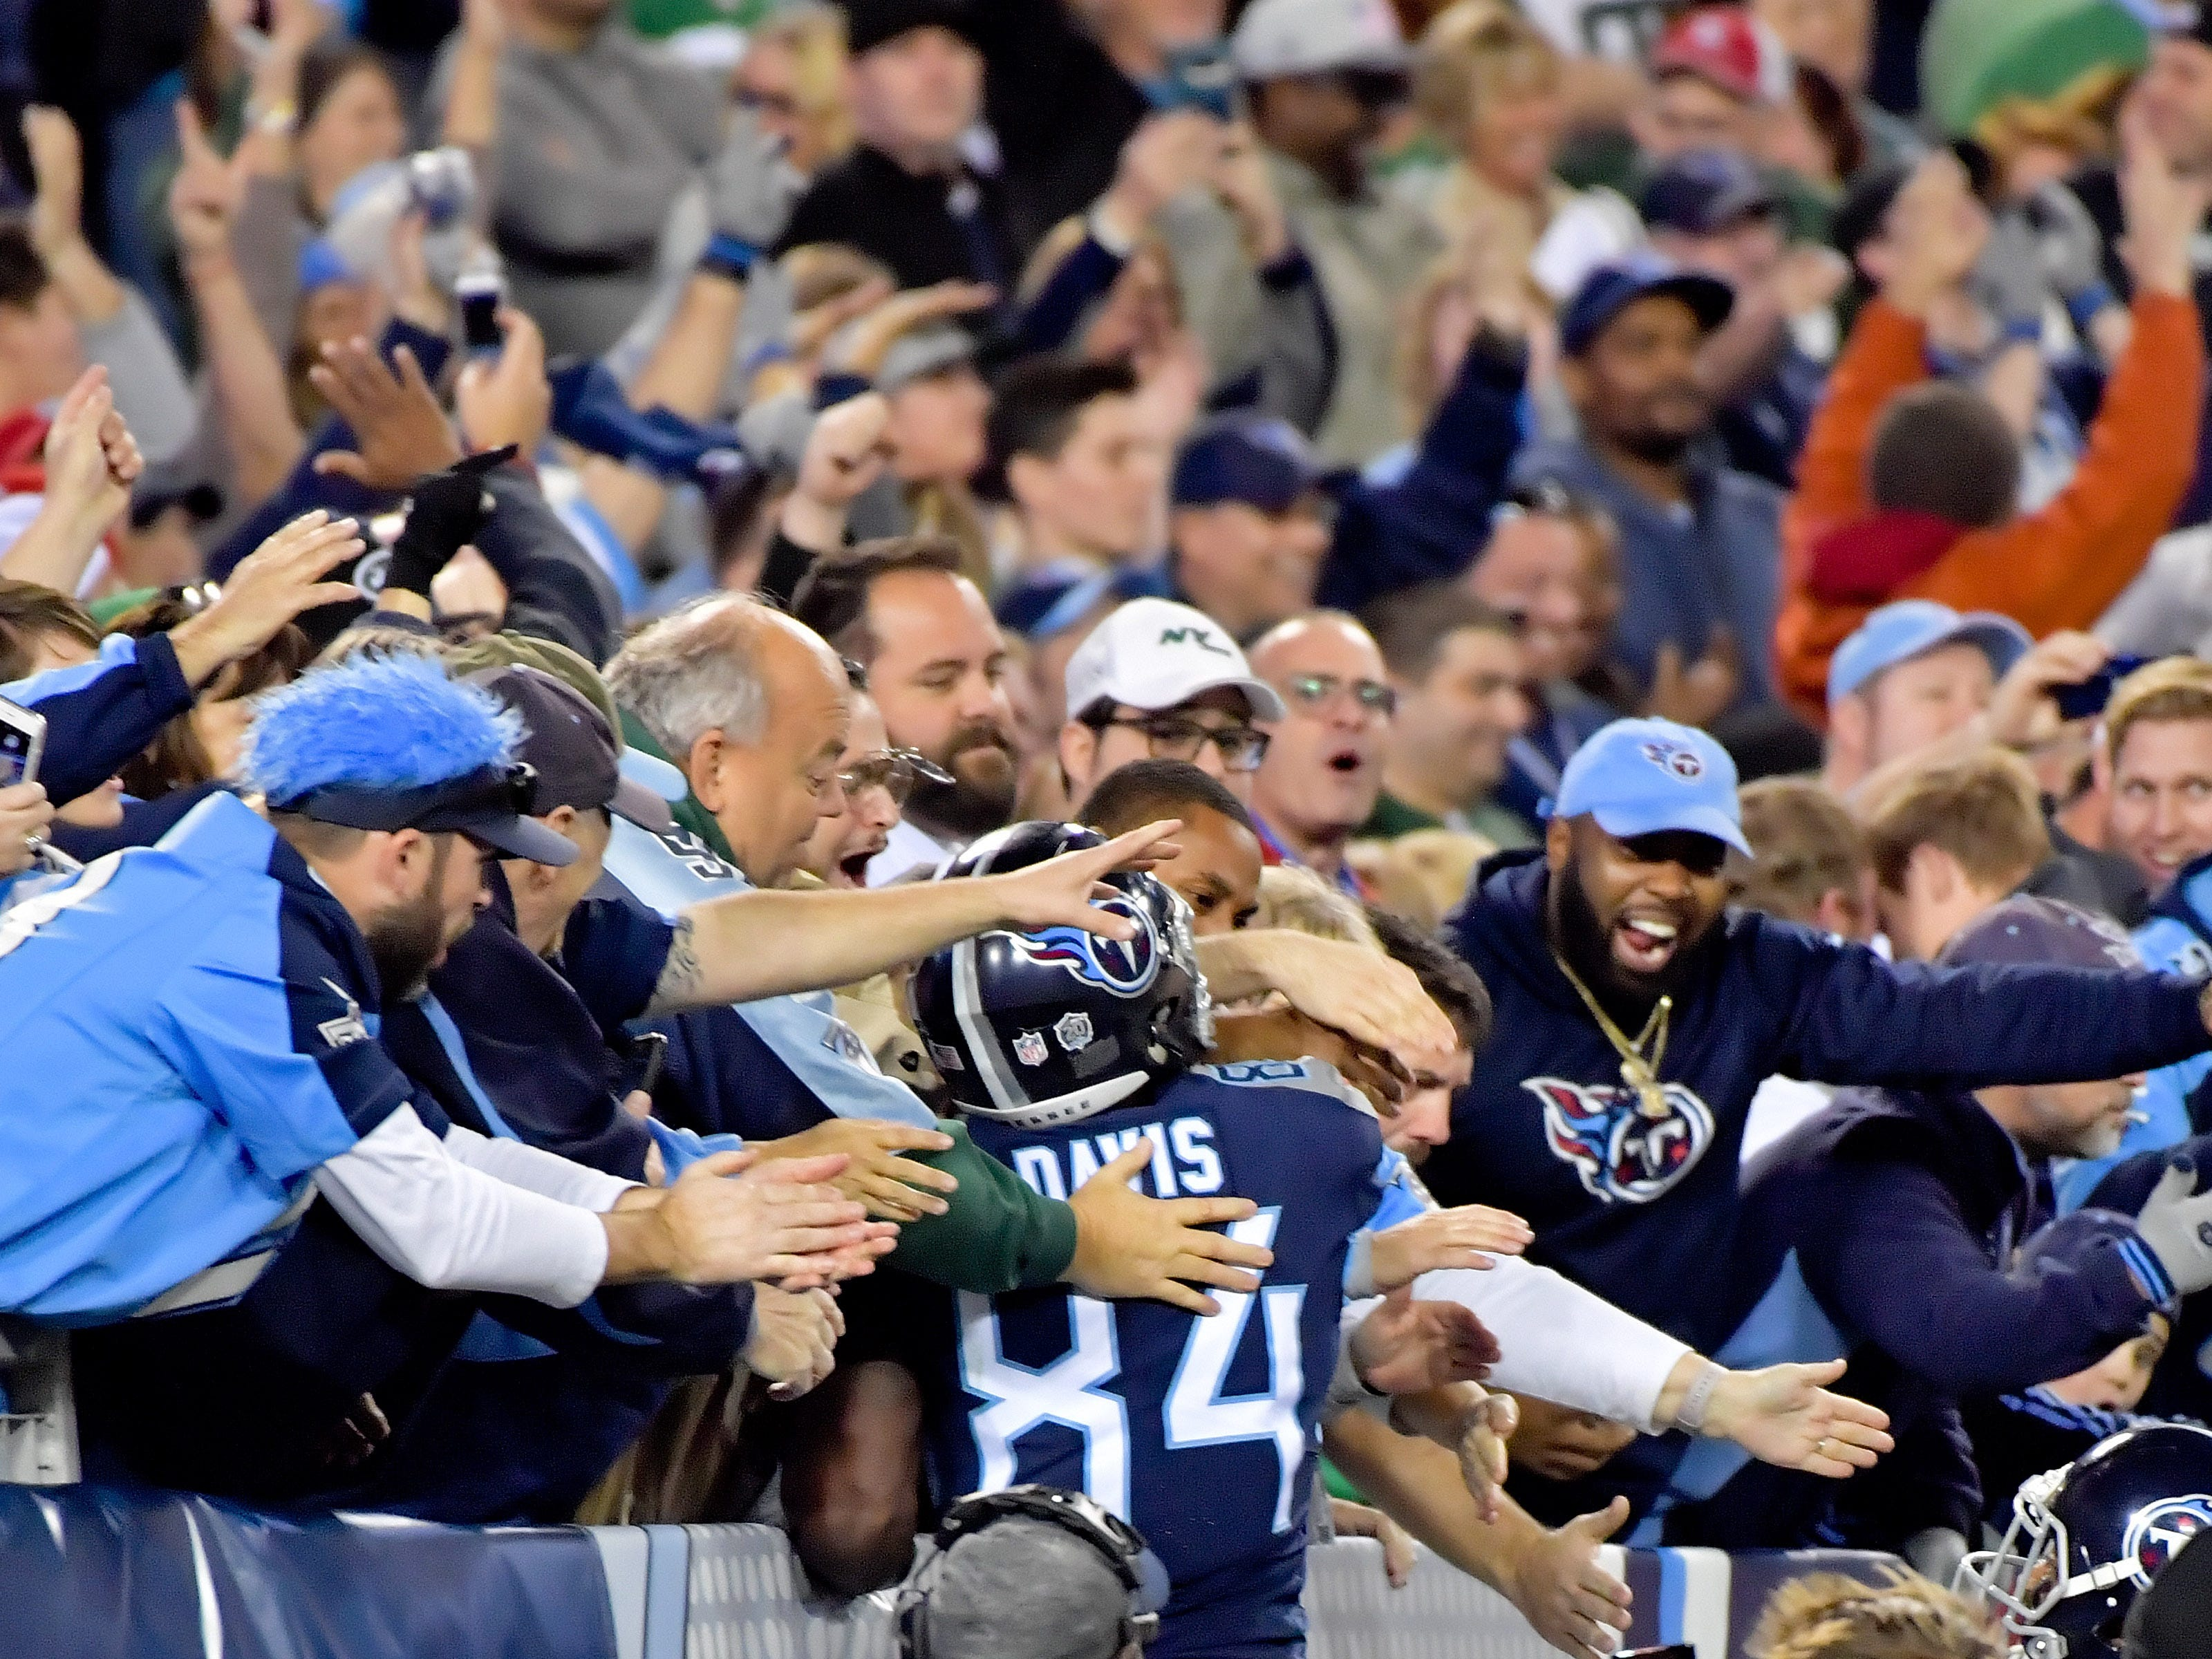 Tennessee Titans wide receiver Corey Davis celebrates with fans after scoring the winning touchdown against the New York Jets during the second half at Nissan Stadium.